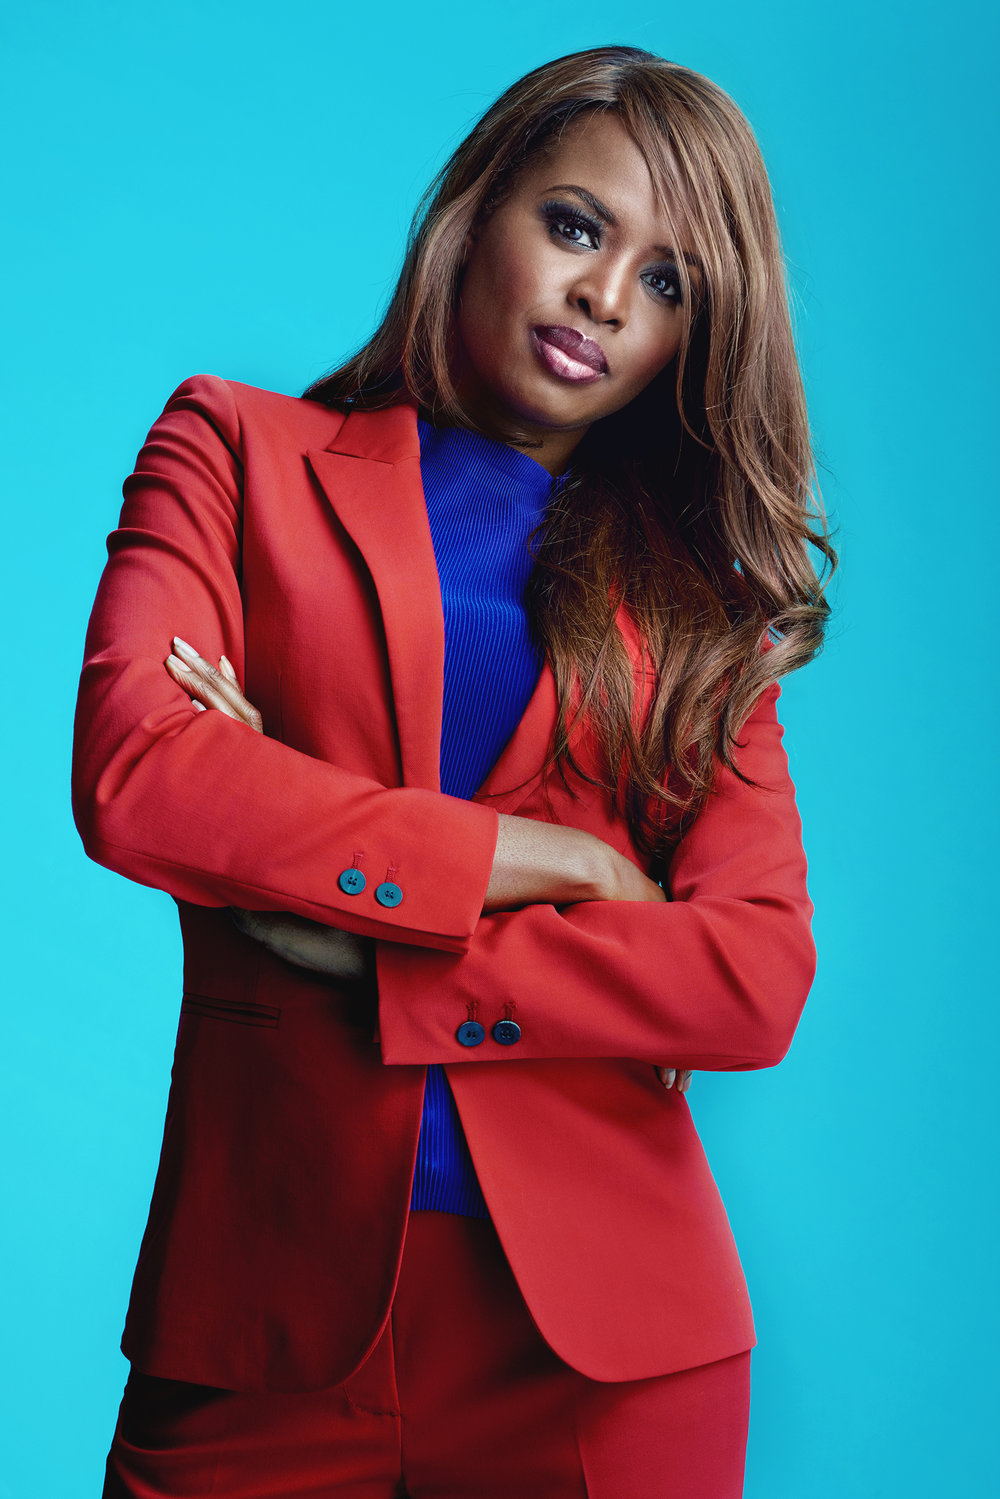 june_ low res_ SHOT_6_JUNE_SARPONG_YOU_MAG_0278.jpg